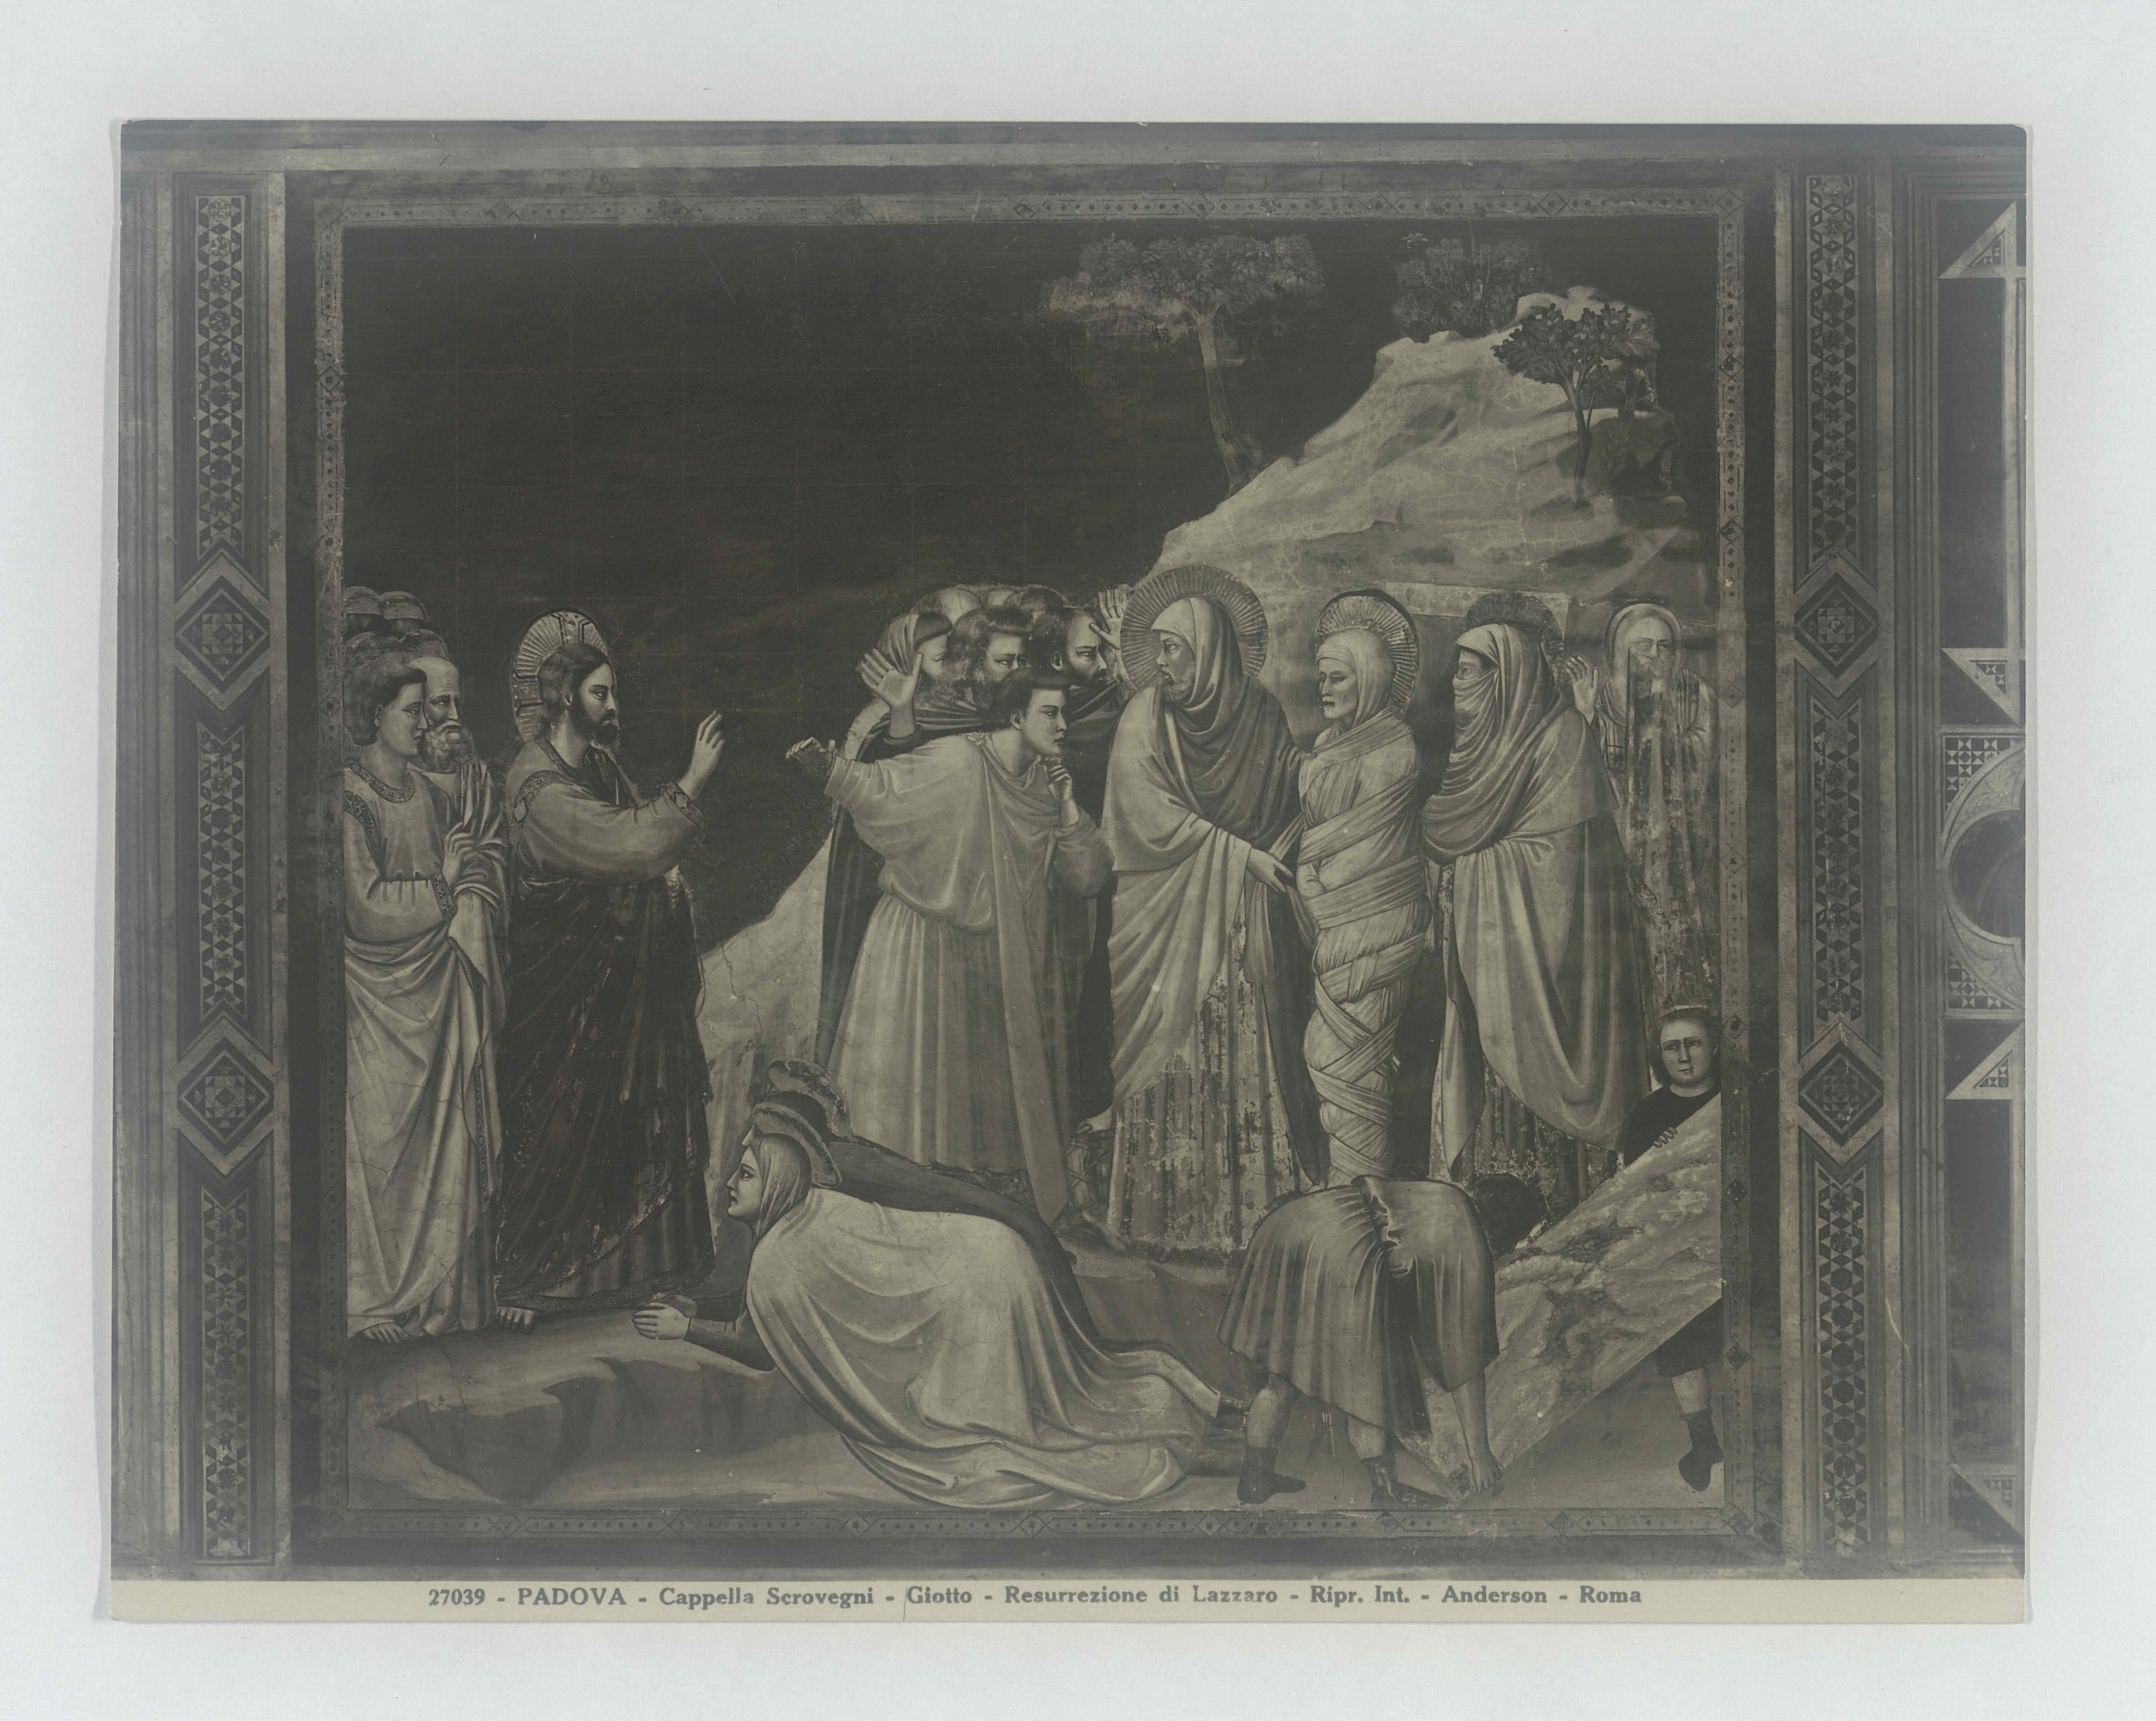 Photograph of The Resurrection of Lazarus by Fra Angelico, taken by Anita Malfatti